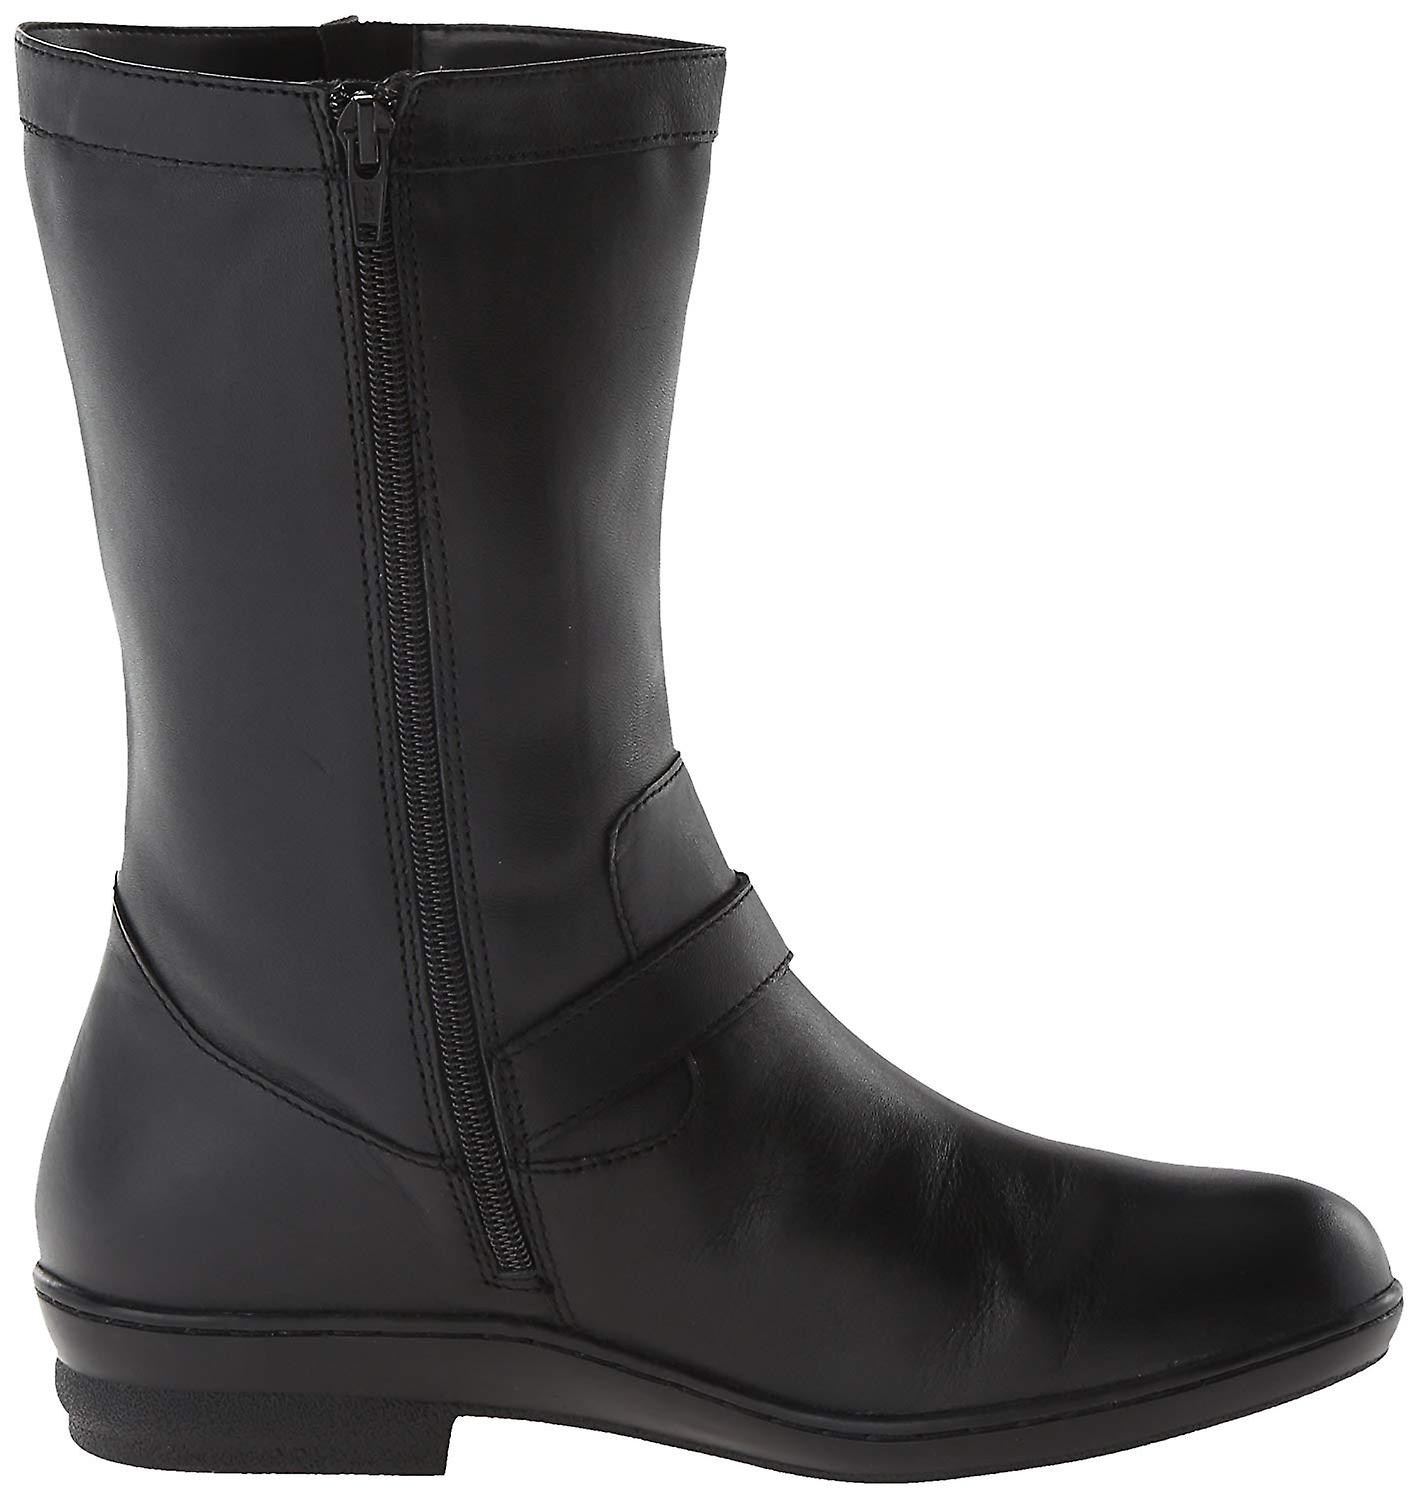 David Tate Womens Dorthy Leather Round Toe Ankle Fashion Boots